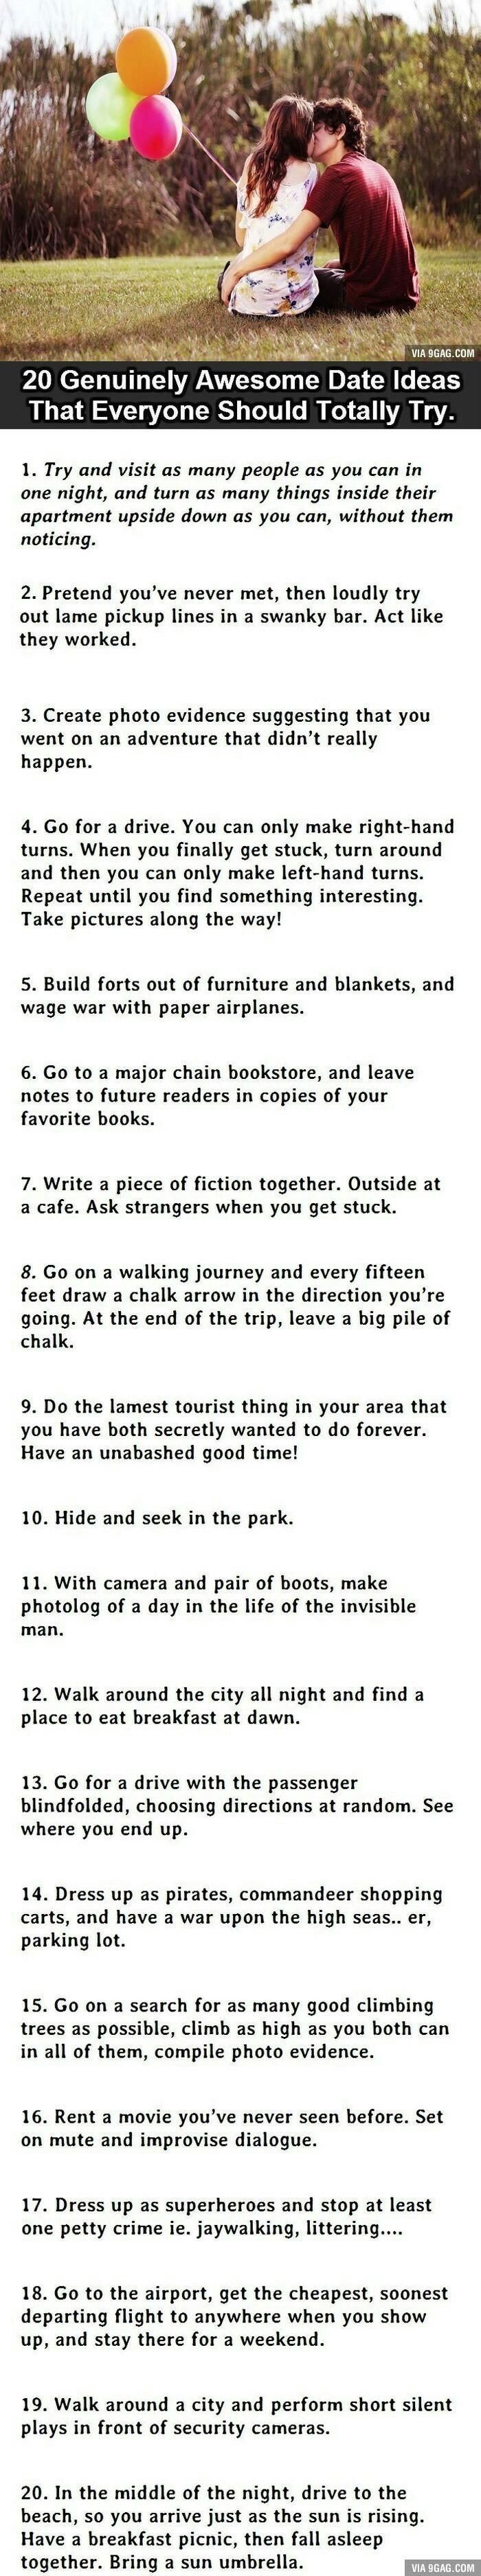 10 Stunning Good Bet Ideas For Couples 19 best date ideas images on pinterest romantic ideas i love you 5 2020